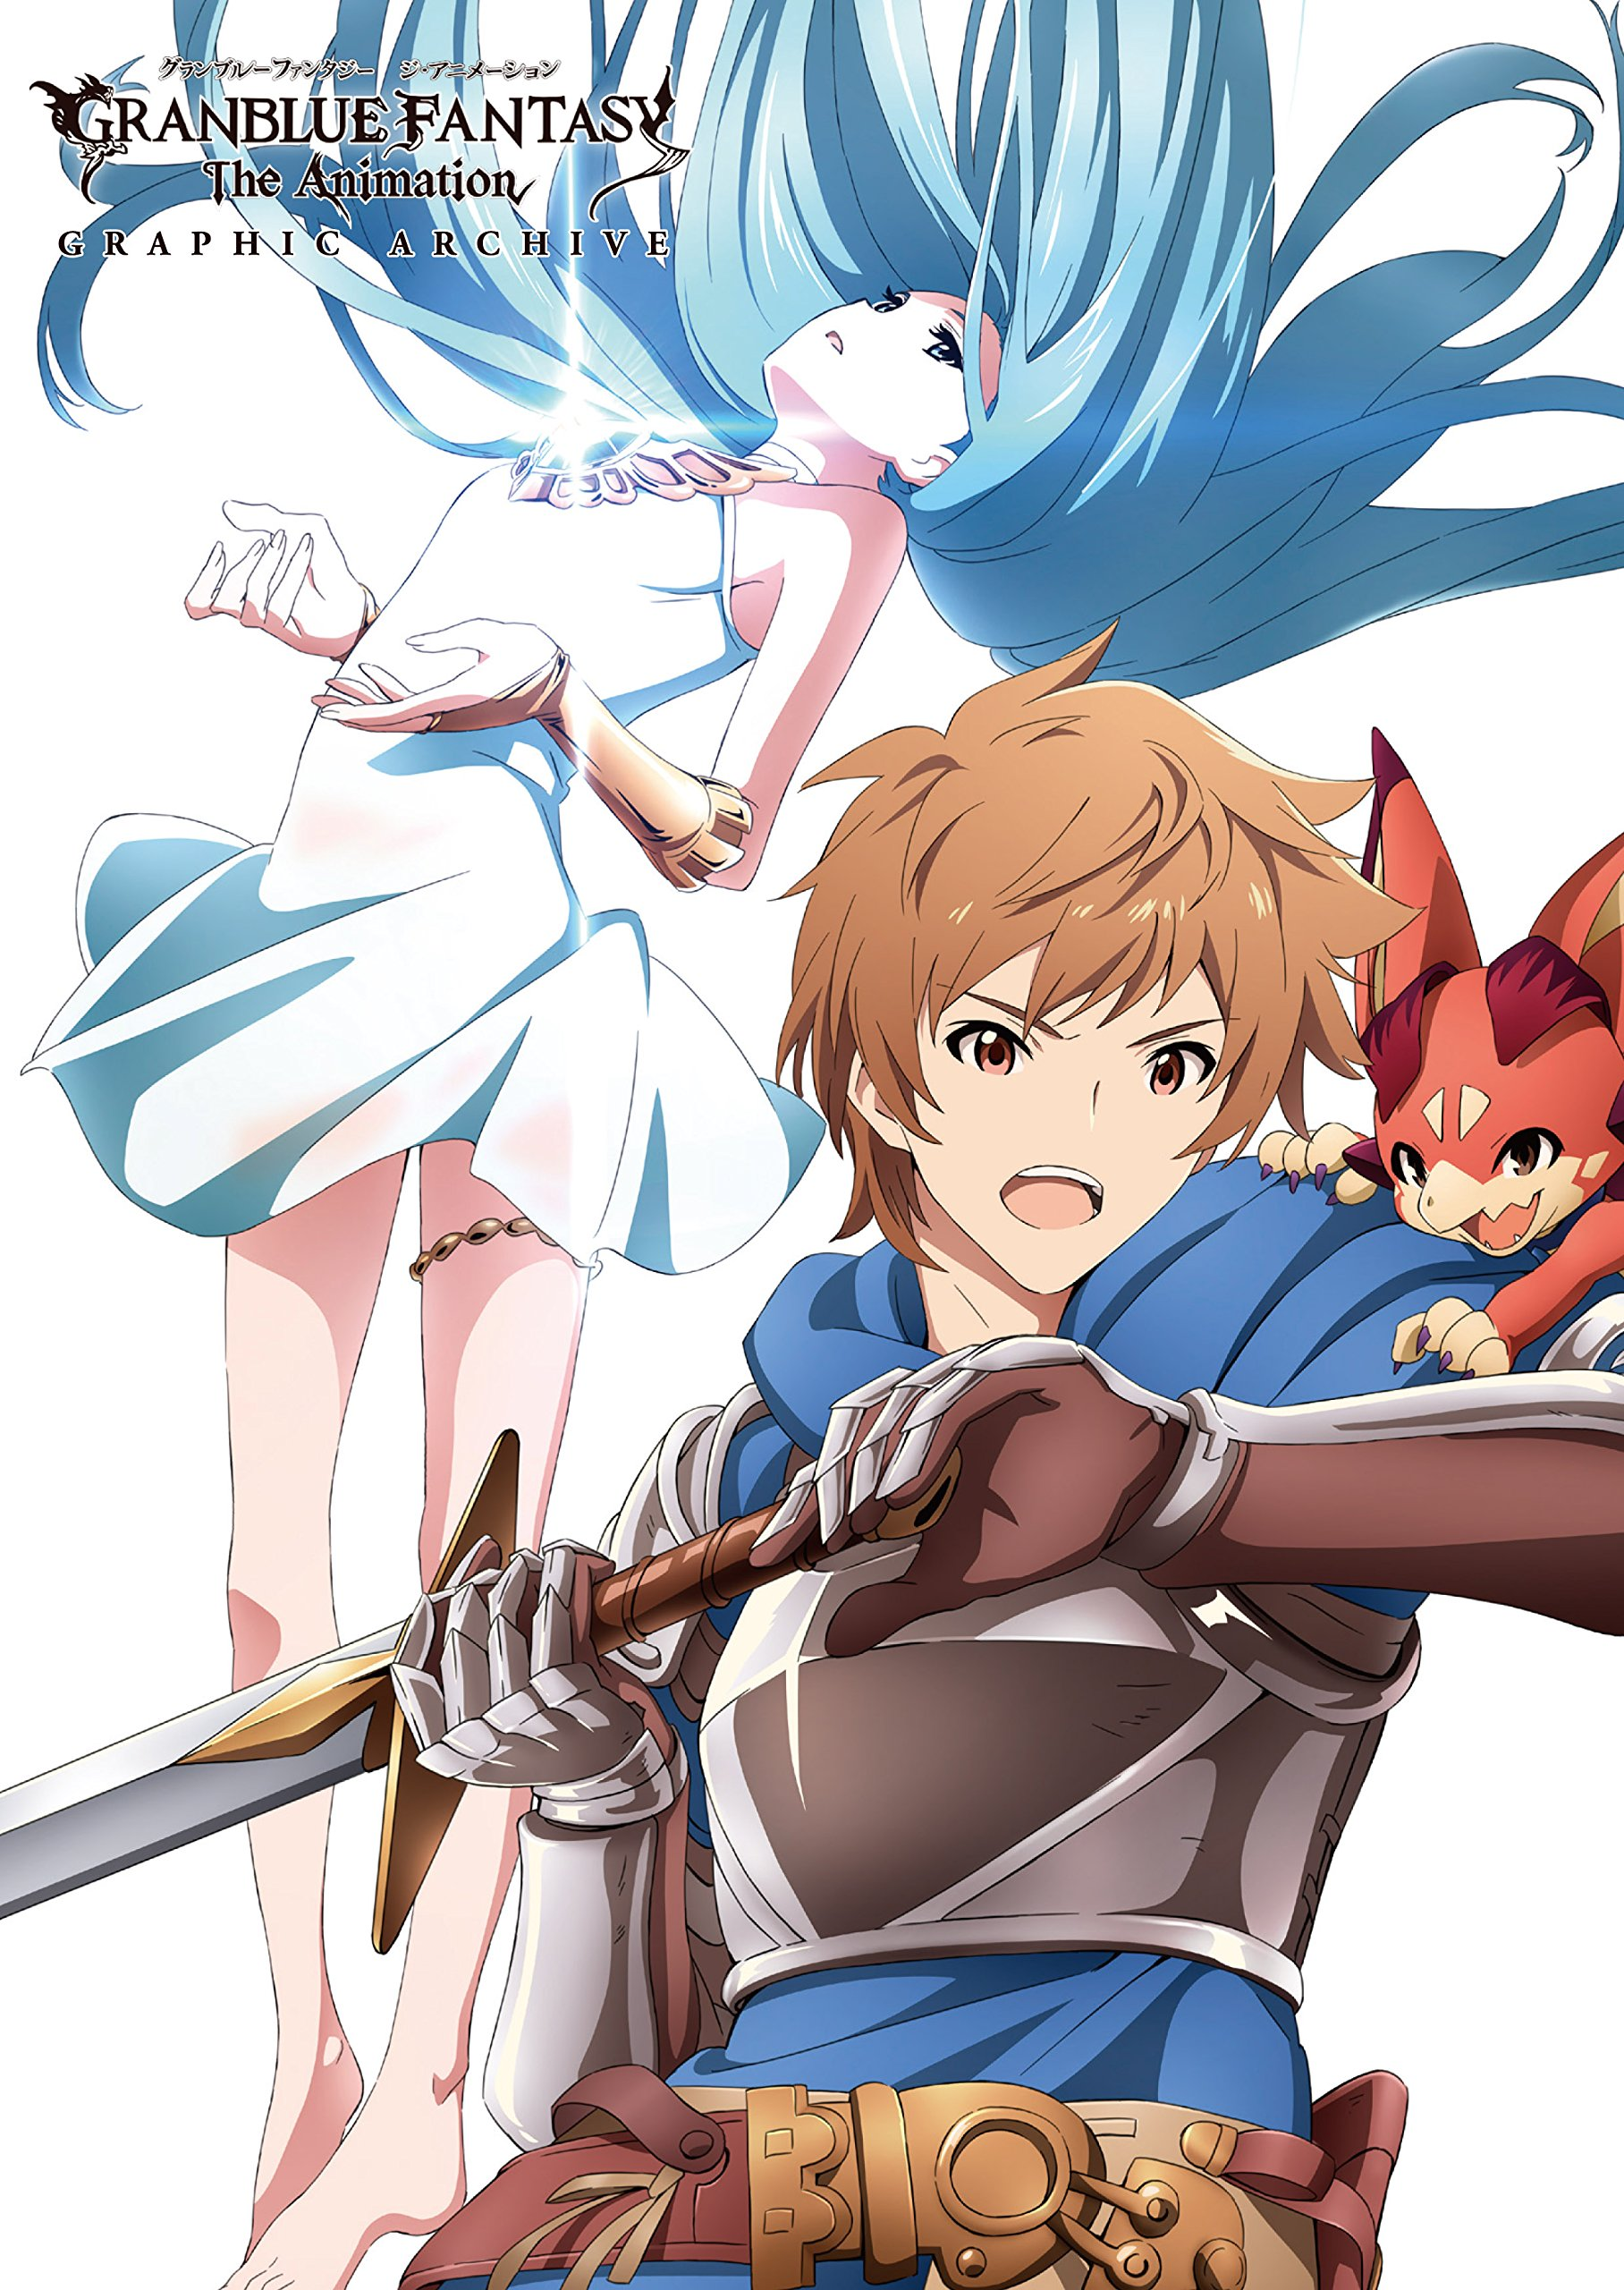 GRANBLUE FANTASY The Animation Graphic Archive Japan Anime Art Book NEW